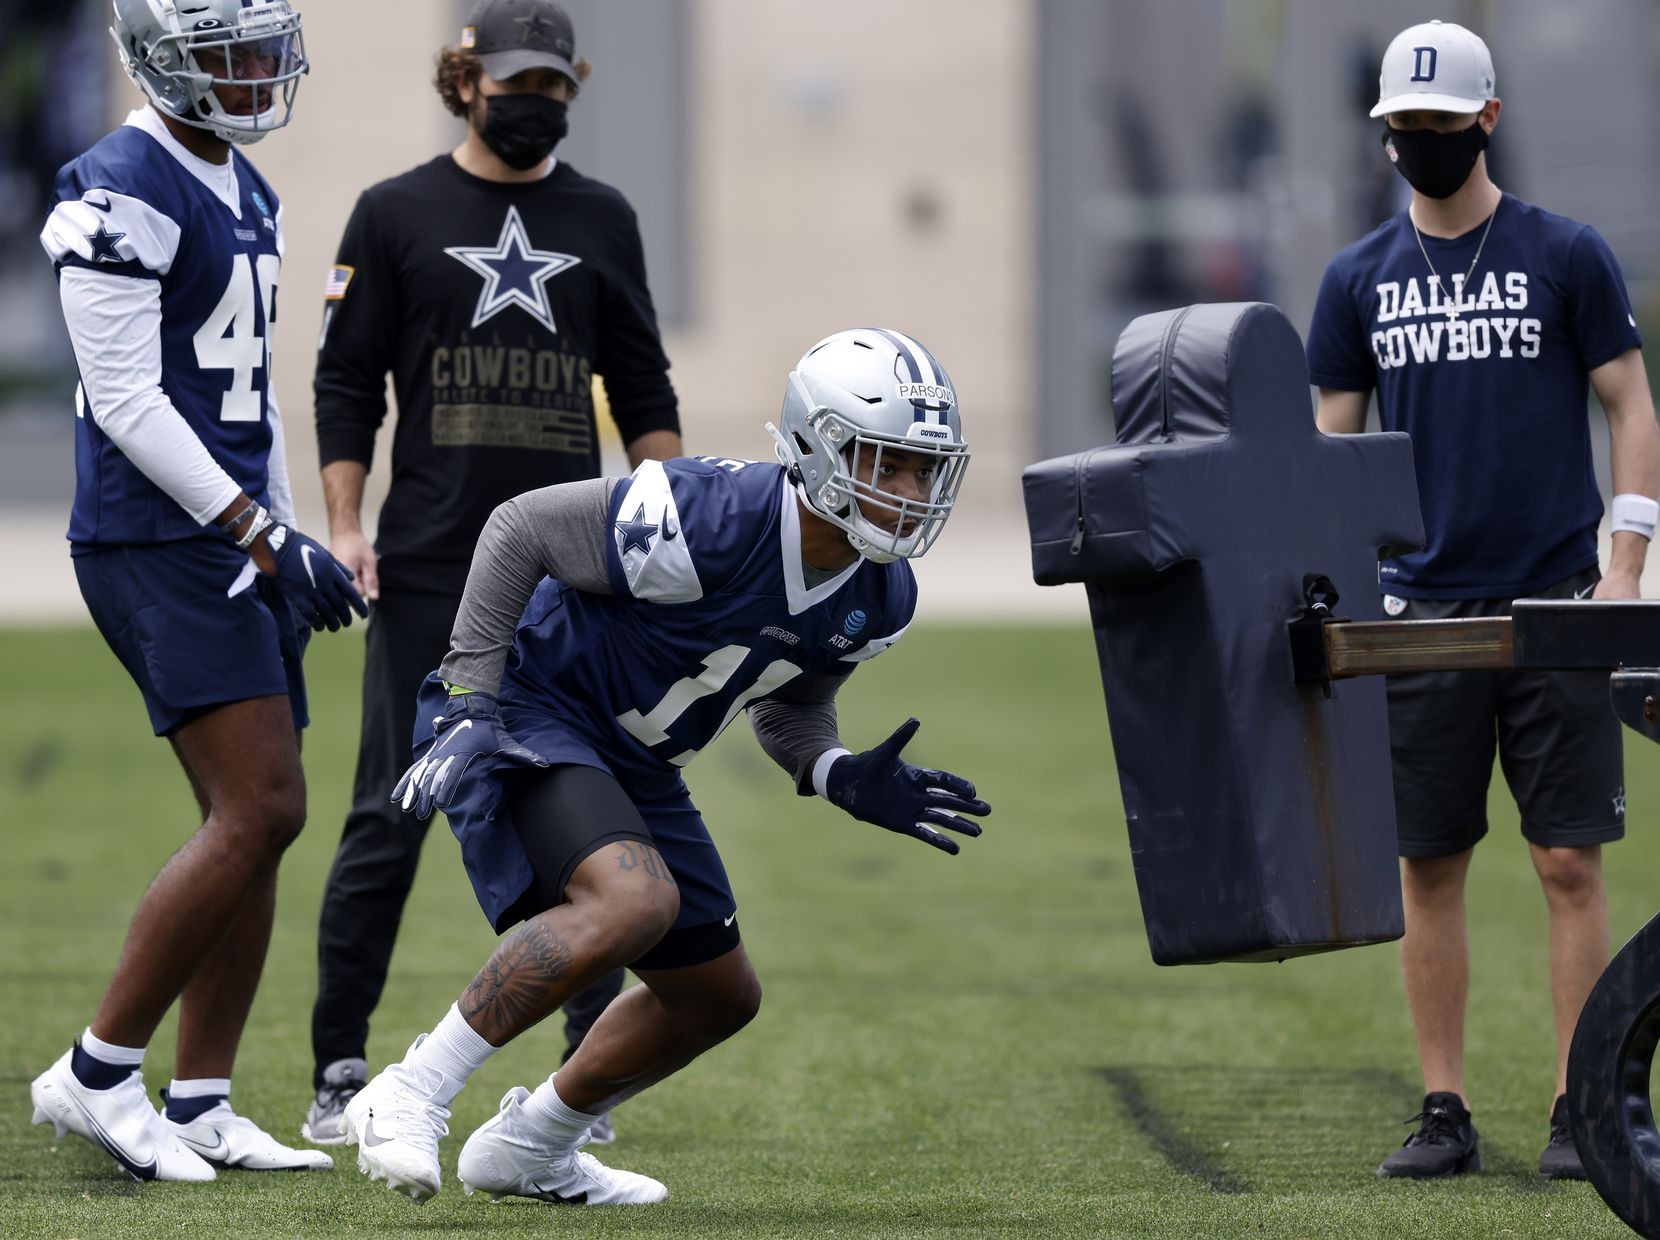 Dallas Cowboys rookie linebacker Micah Parsons (11) hits the sled for the first time since a Penn State practice for the Cotton Bowl during rookie minicamp at the The Star in Frisco, Texas, Friday, May 14, 2021. Parson sat out the 2020 season after the Big 10 couldn't decide wether to start the season. (Tom Fox/The Dallas Morning News)